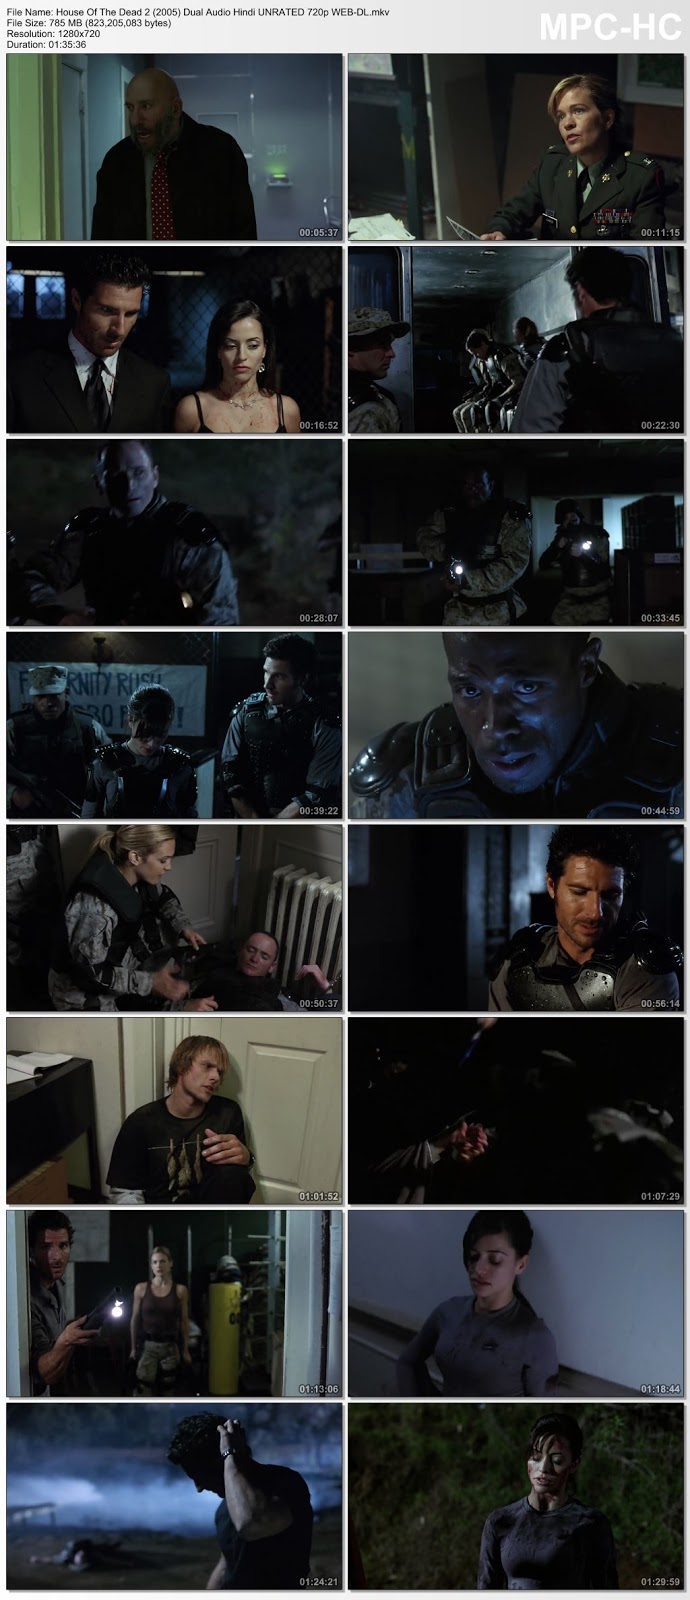 House Of The Dead 2 (2005) Dual Audio Hindi UNRATED 720p WEB-DL 750MB Desirehub